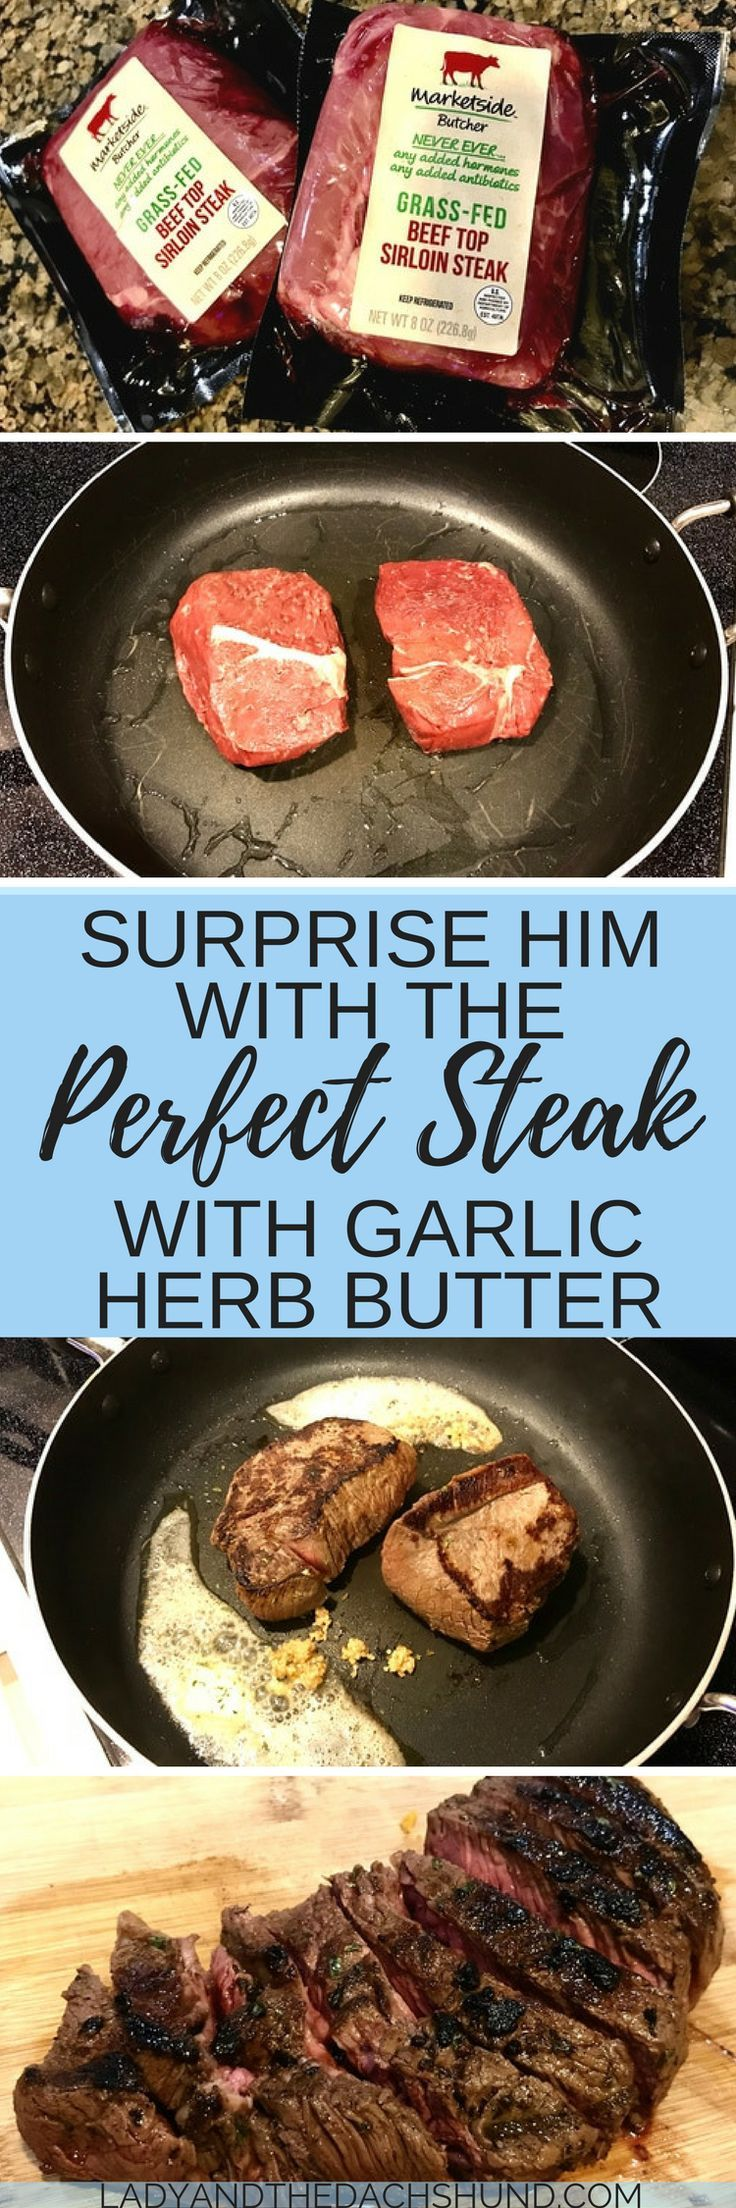 "Perfect steak with an easy steak recipe! Make the perfect steak for two with pan fried steak! Surprise him or impress him by cooking the perfect steak on the stove. Great birthday idea for him or anniversary dinner. An ""impress him dinner"" is the perfect"